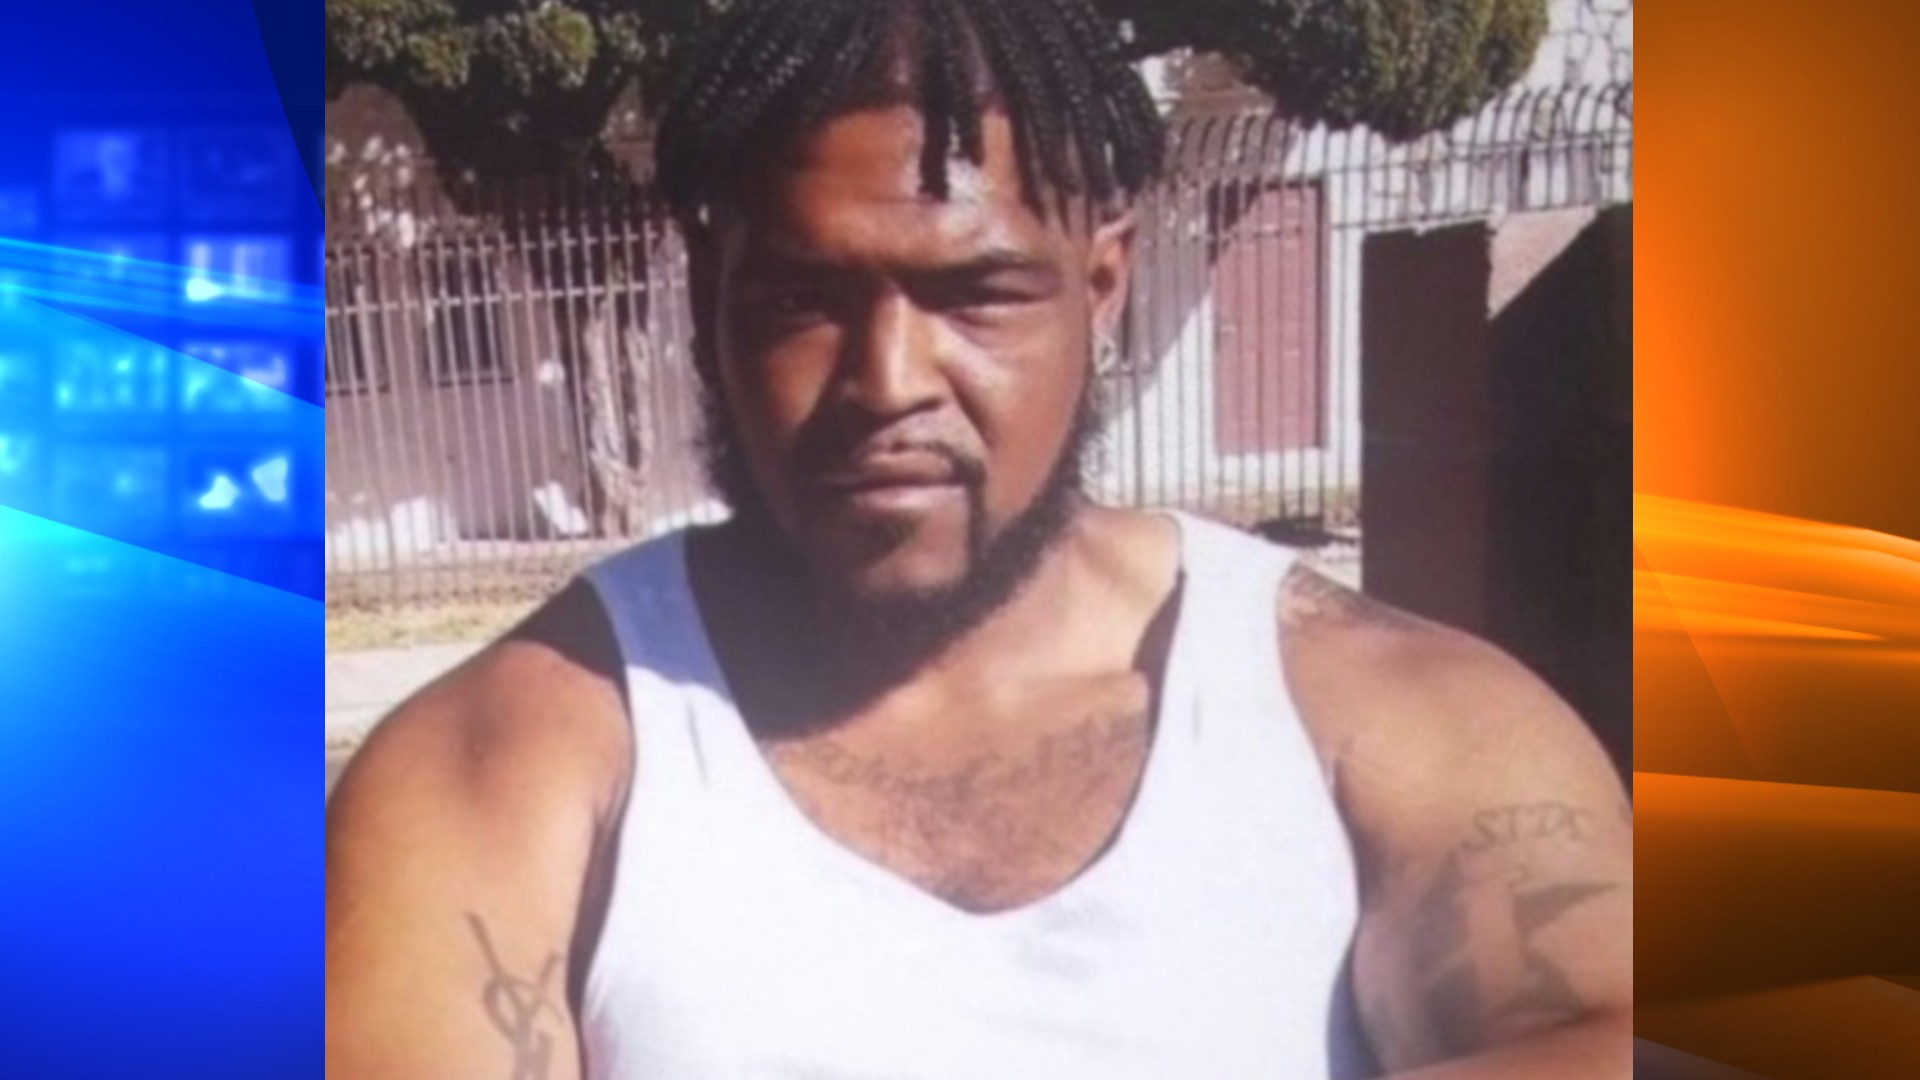 Dijon Kizzee is seen in an undated photo shared to KTLA by his family.